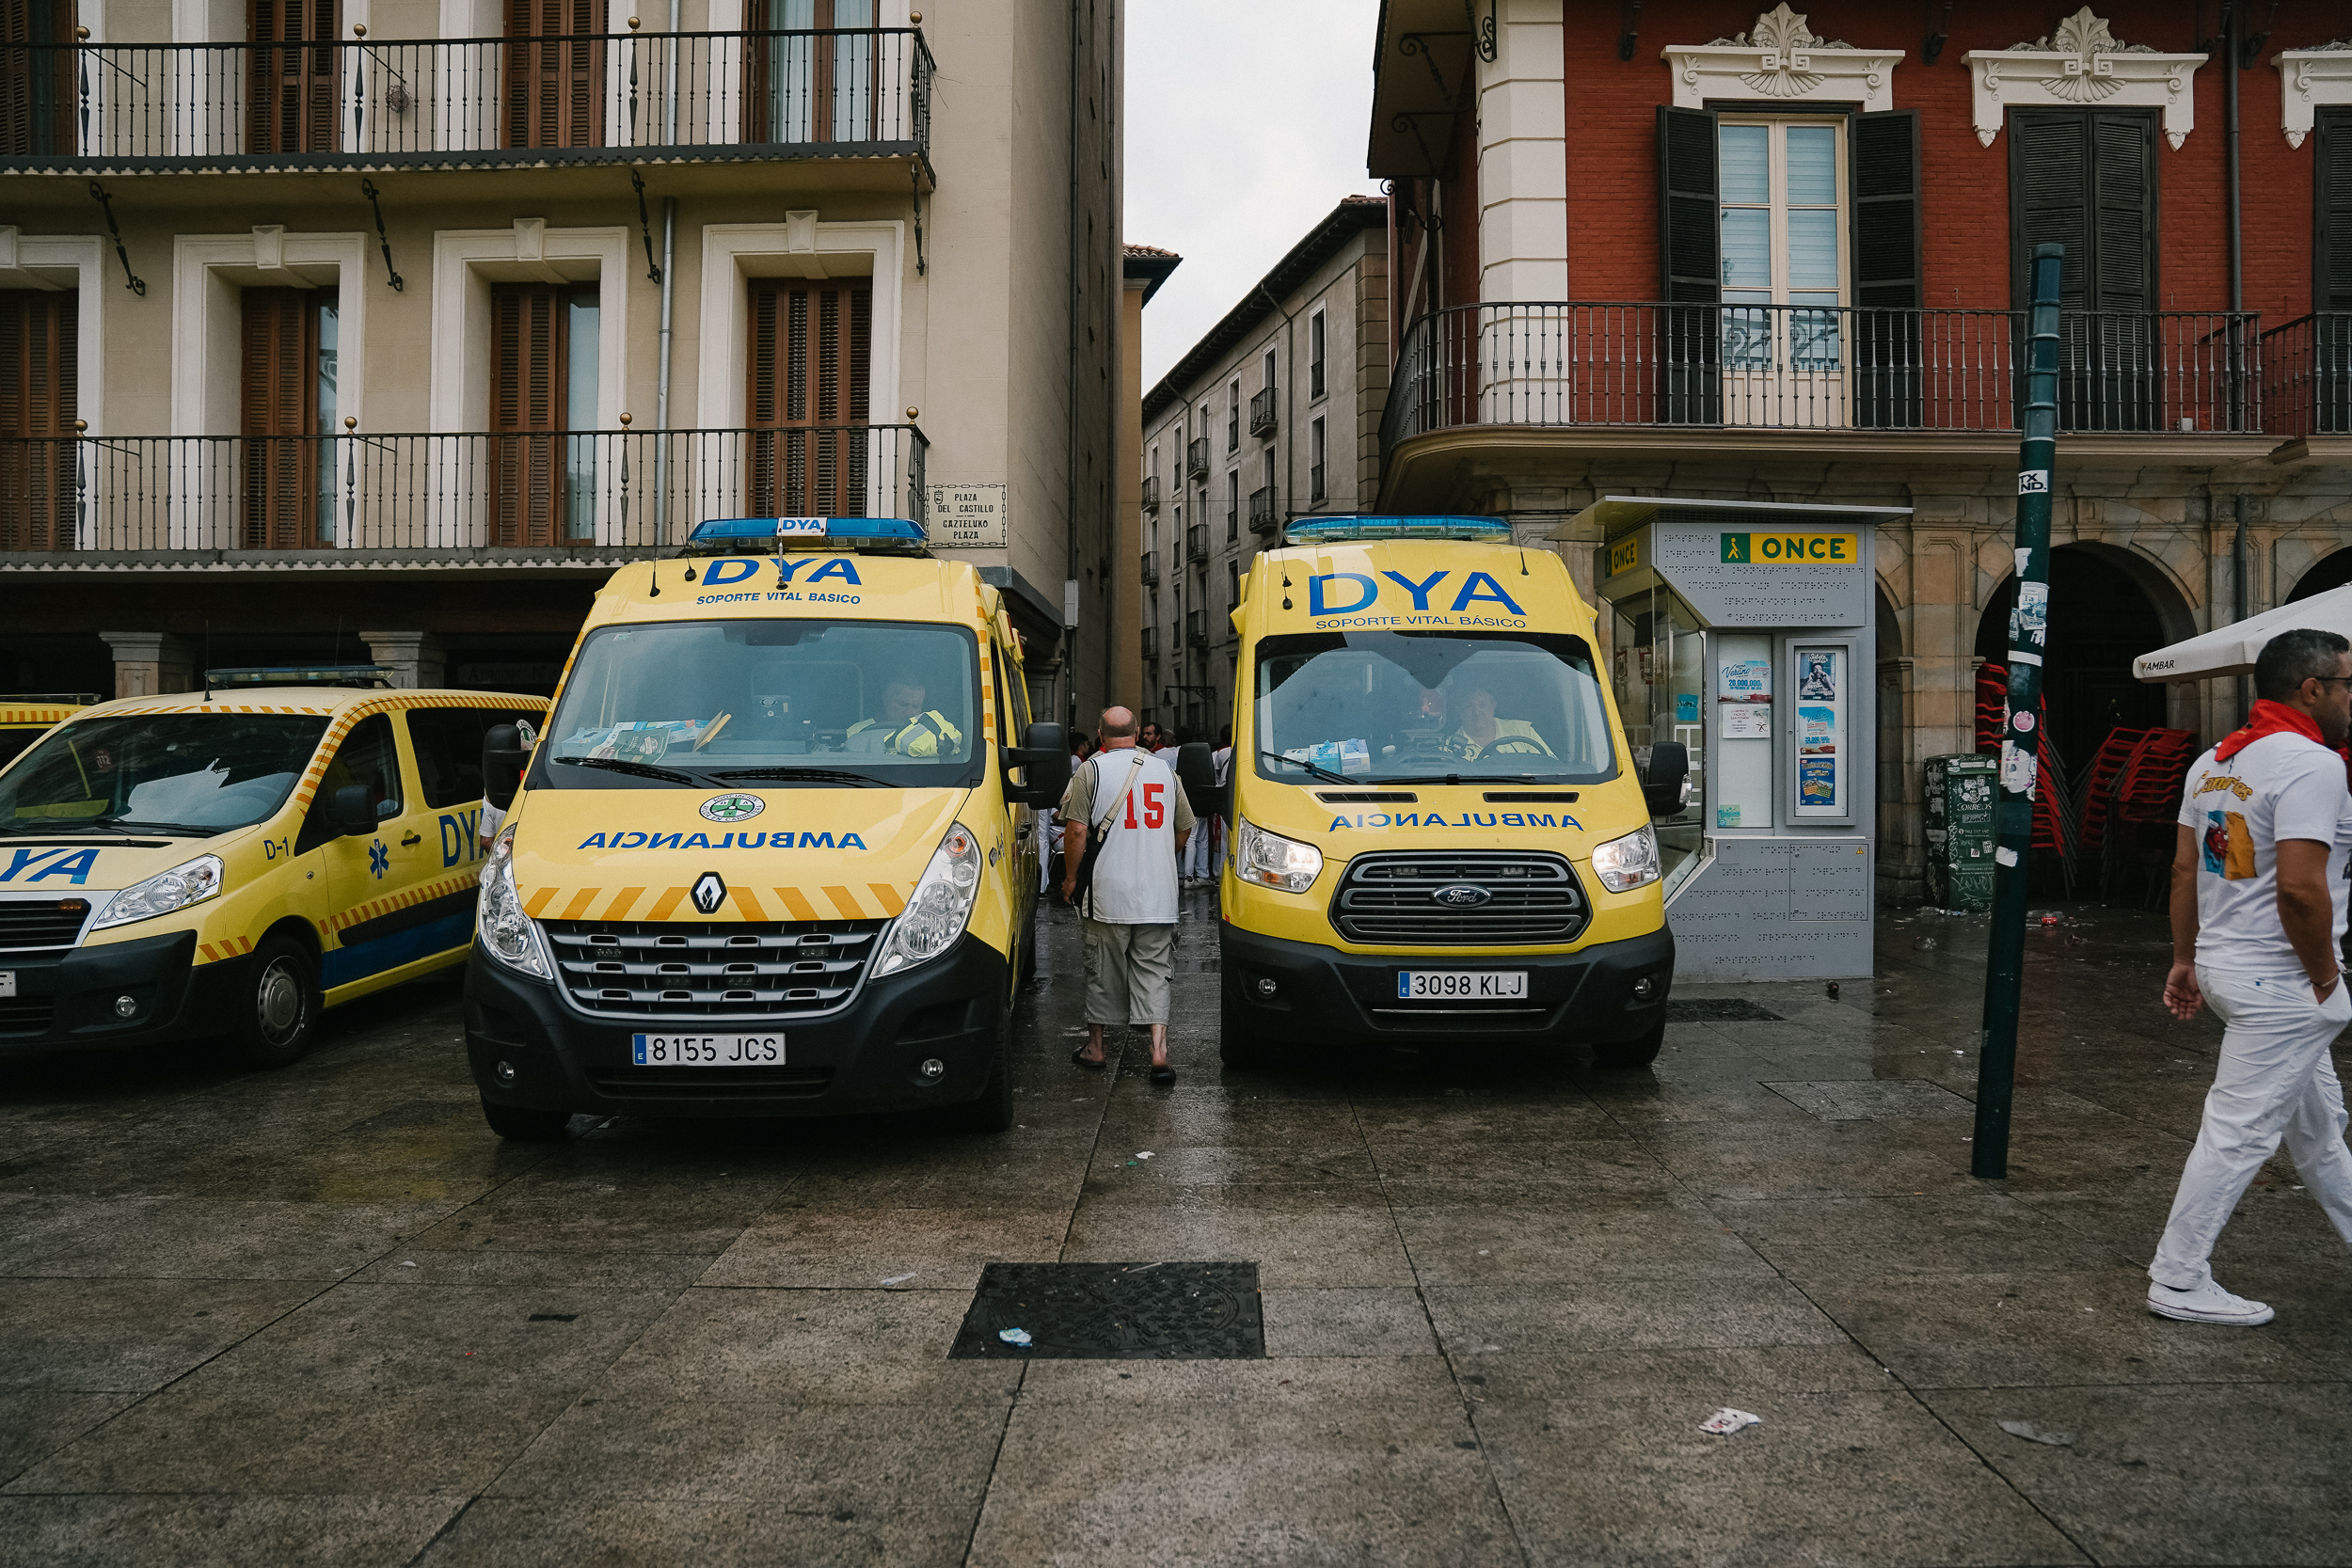 Ambulances wait behind the narrow city streets for injuries or deaths.